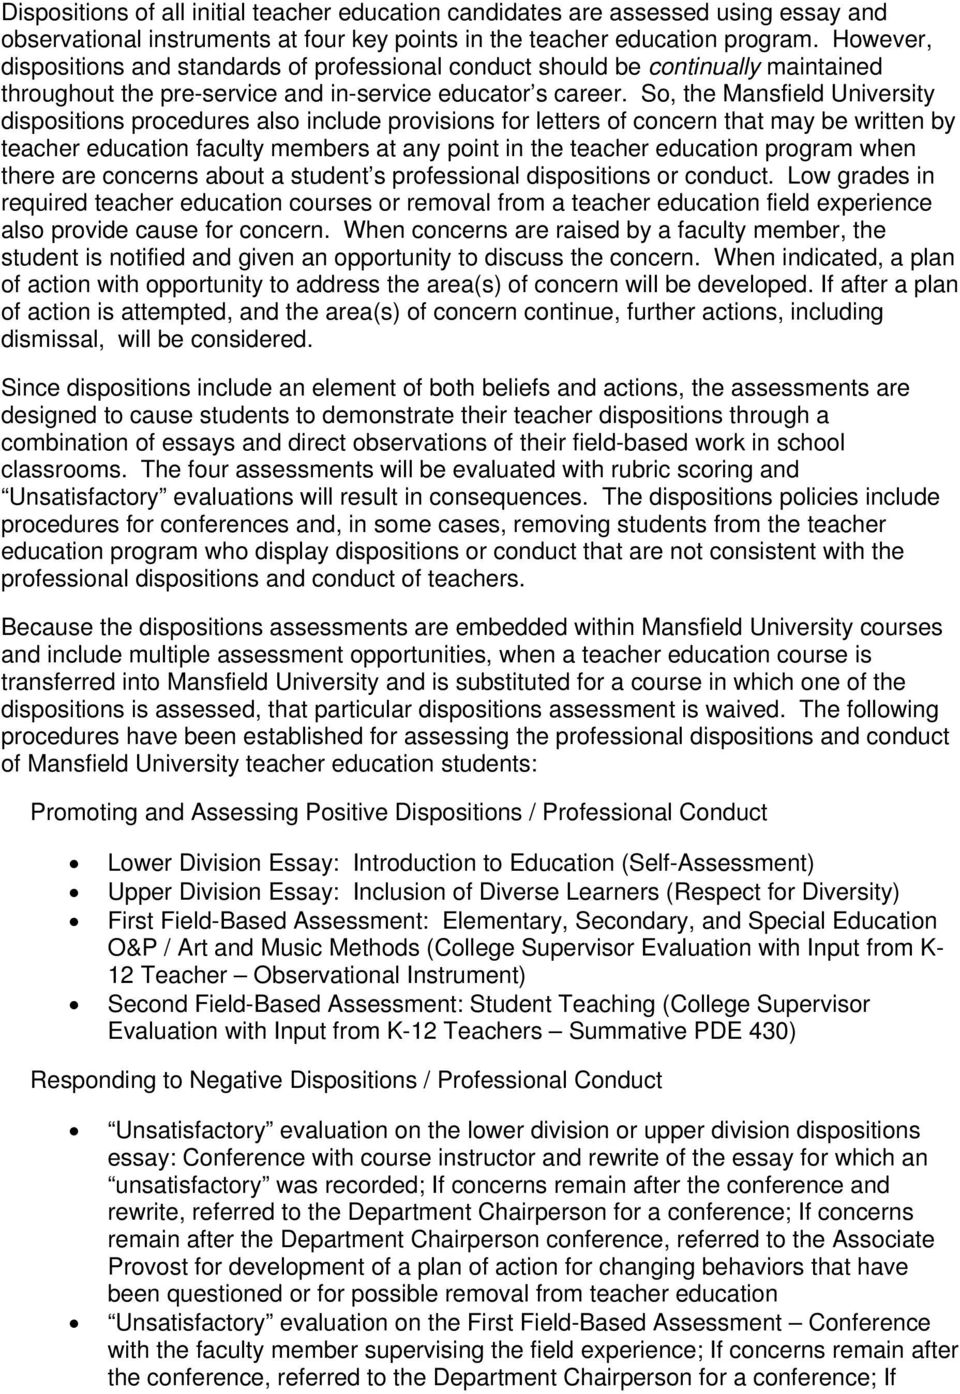 So, the Mansfield University dispositions procedures also include provisions for letters of concern that may be written by teacher education faculty members at any point in the teacher education